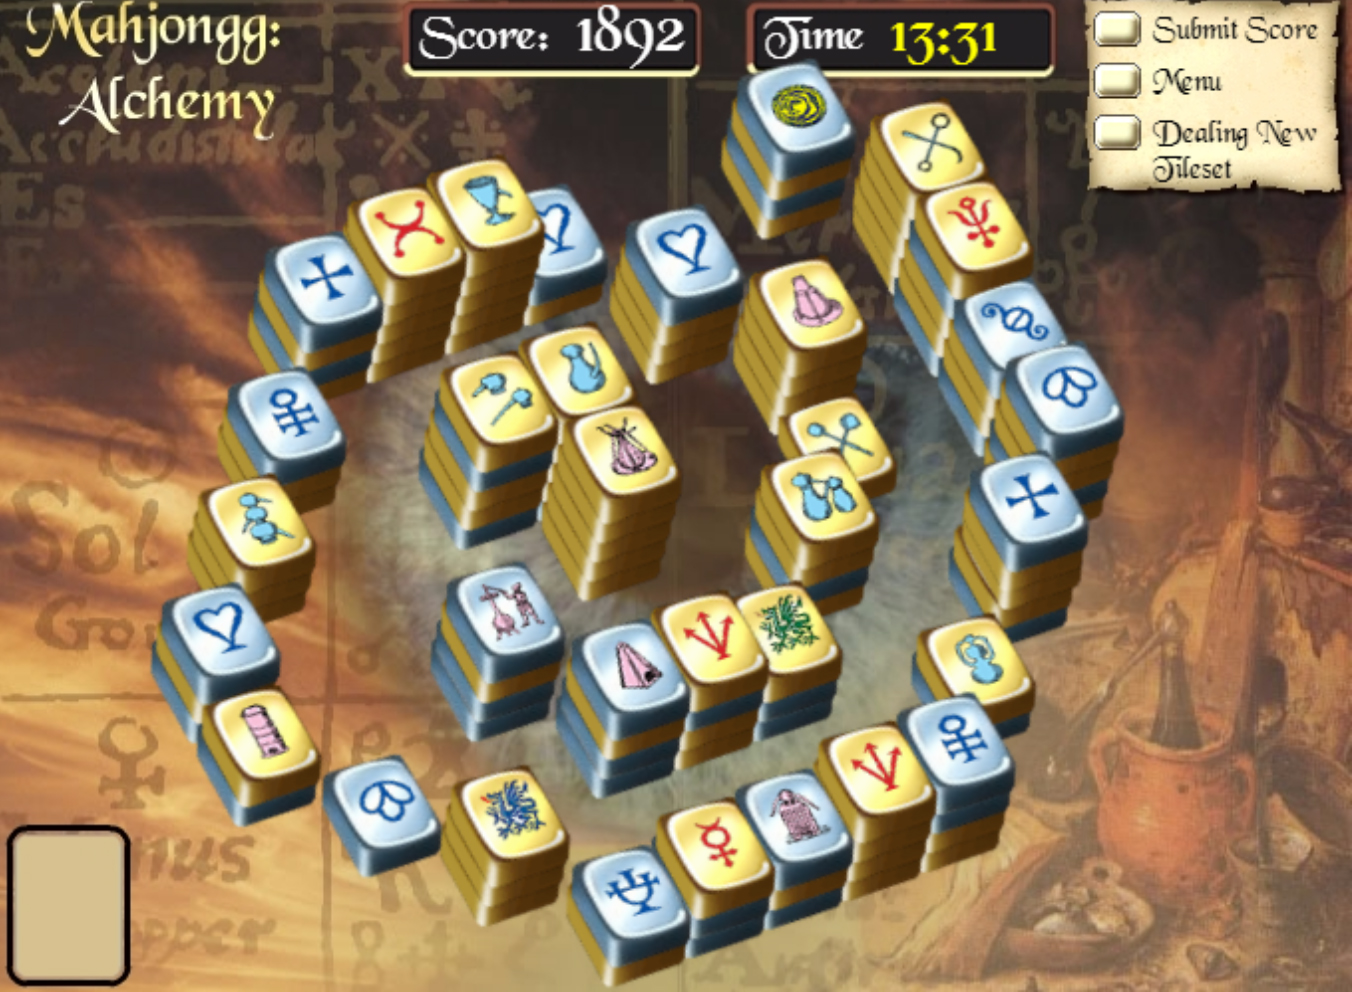 Mahjong Alchemy Mobile